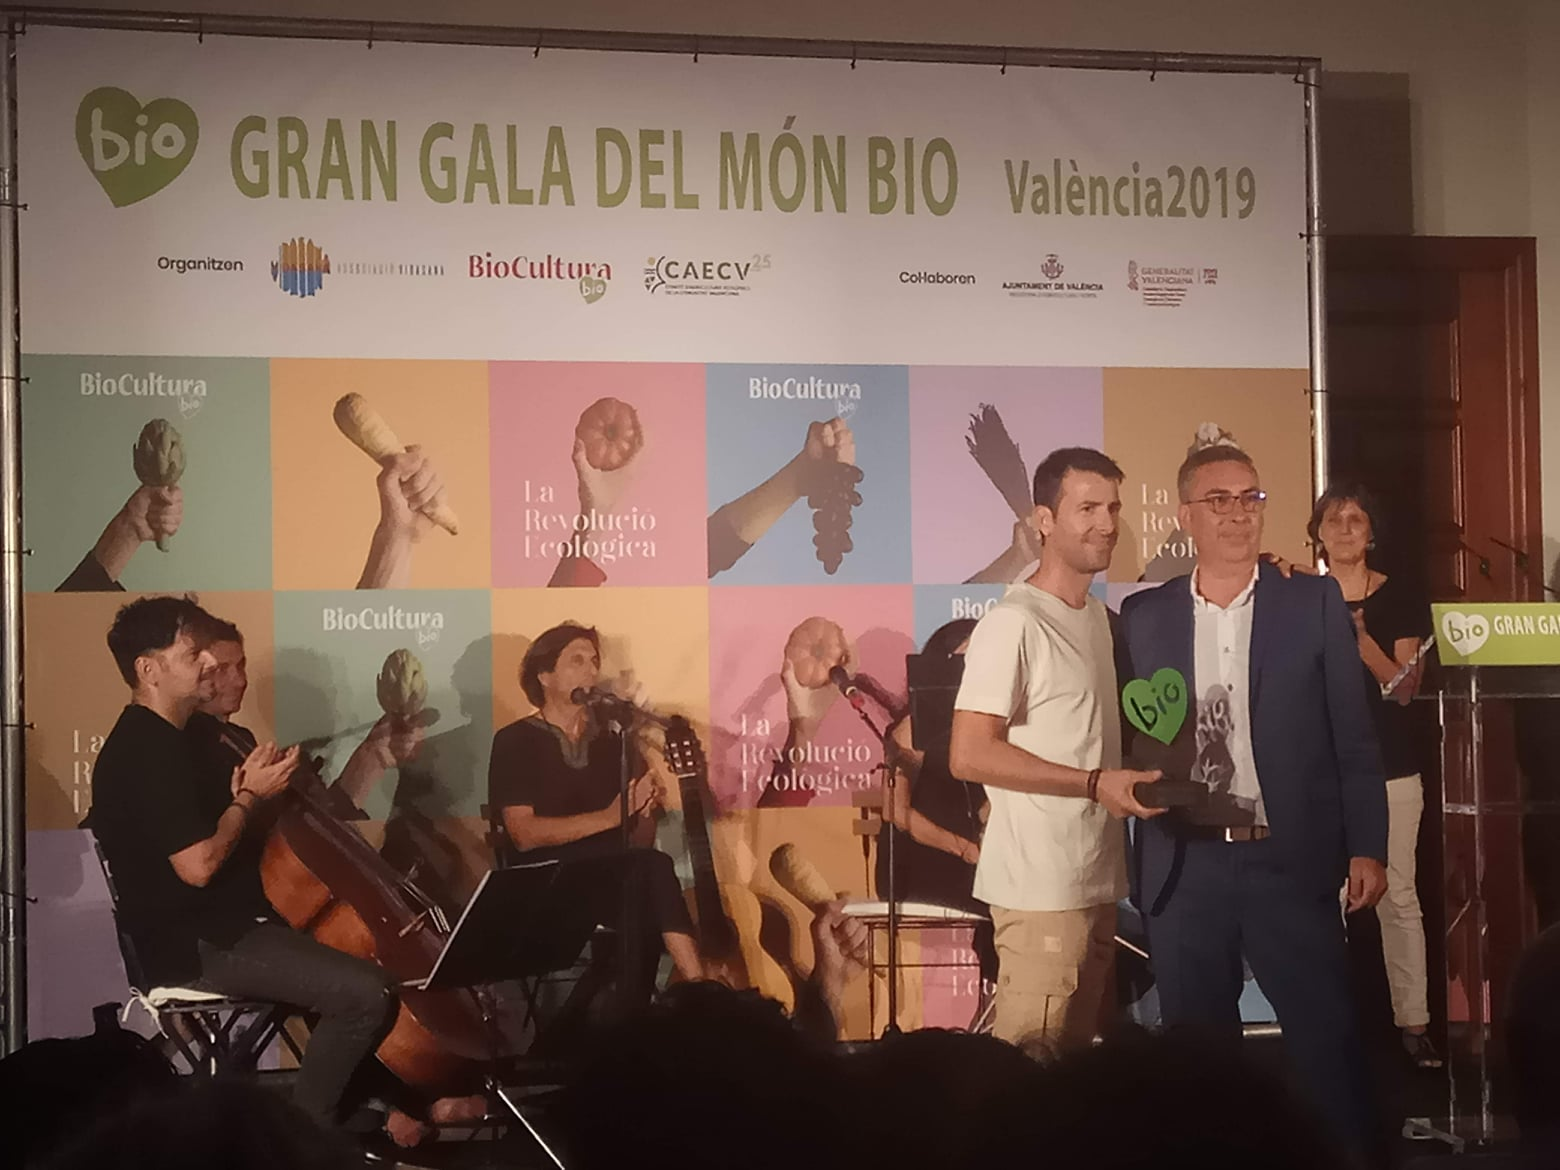 ¡We have a 'green heart'! BioCultura Award at the Gran Gala Bio 2019